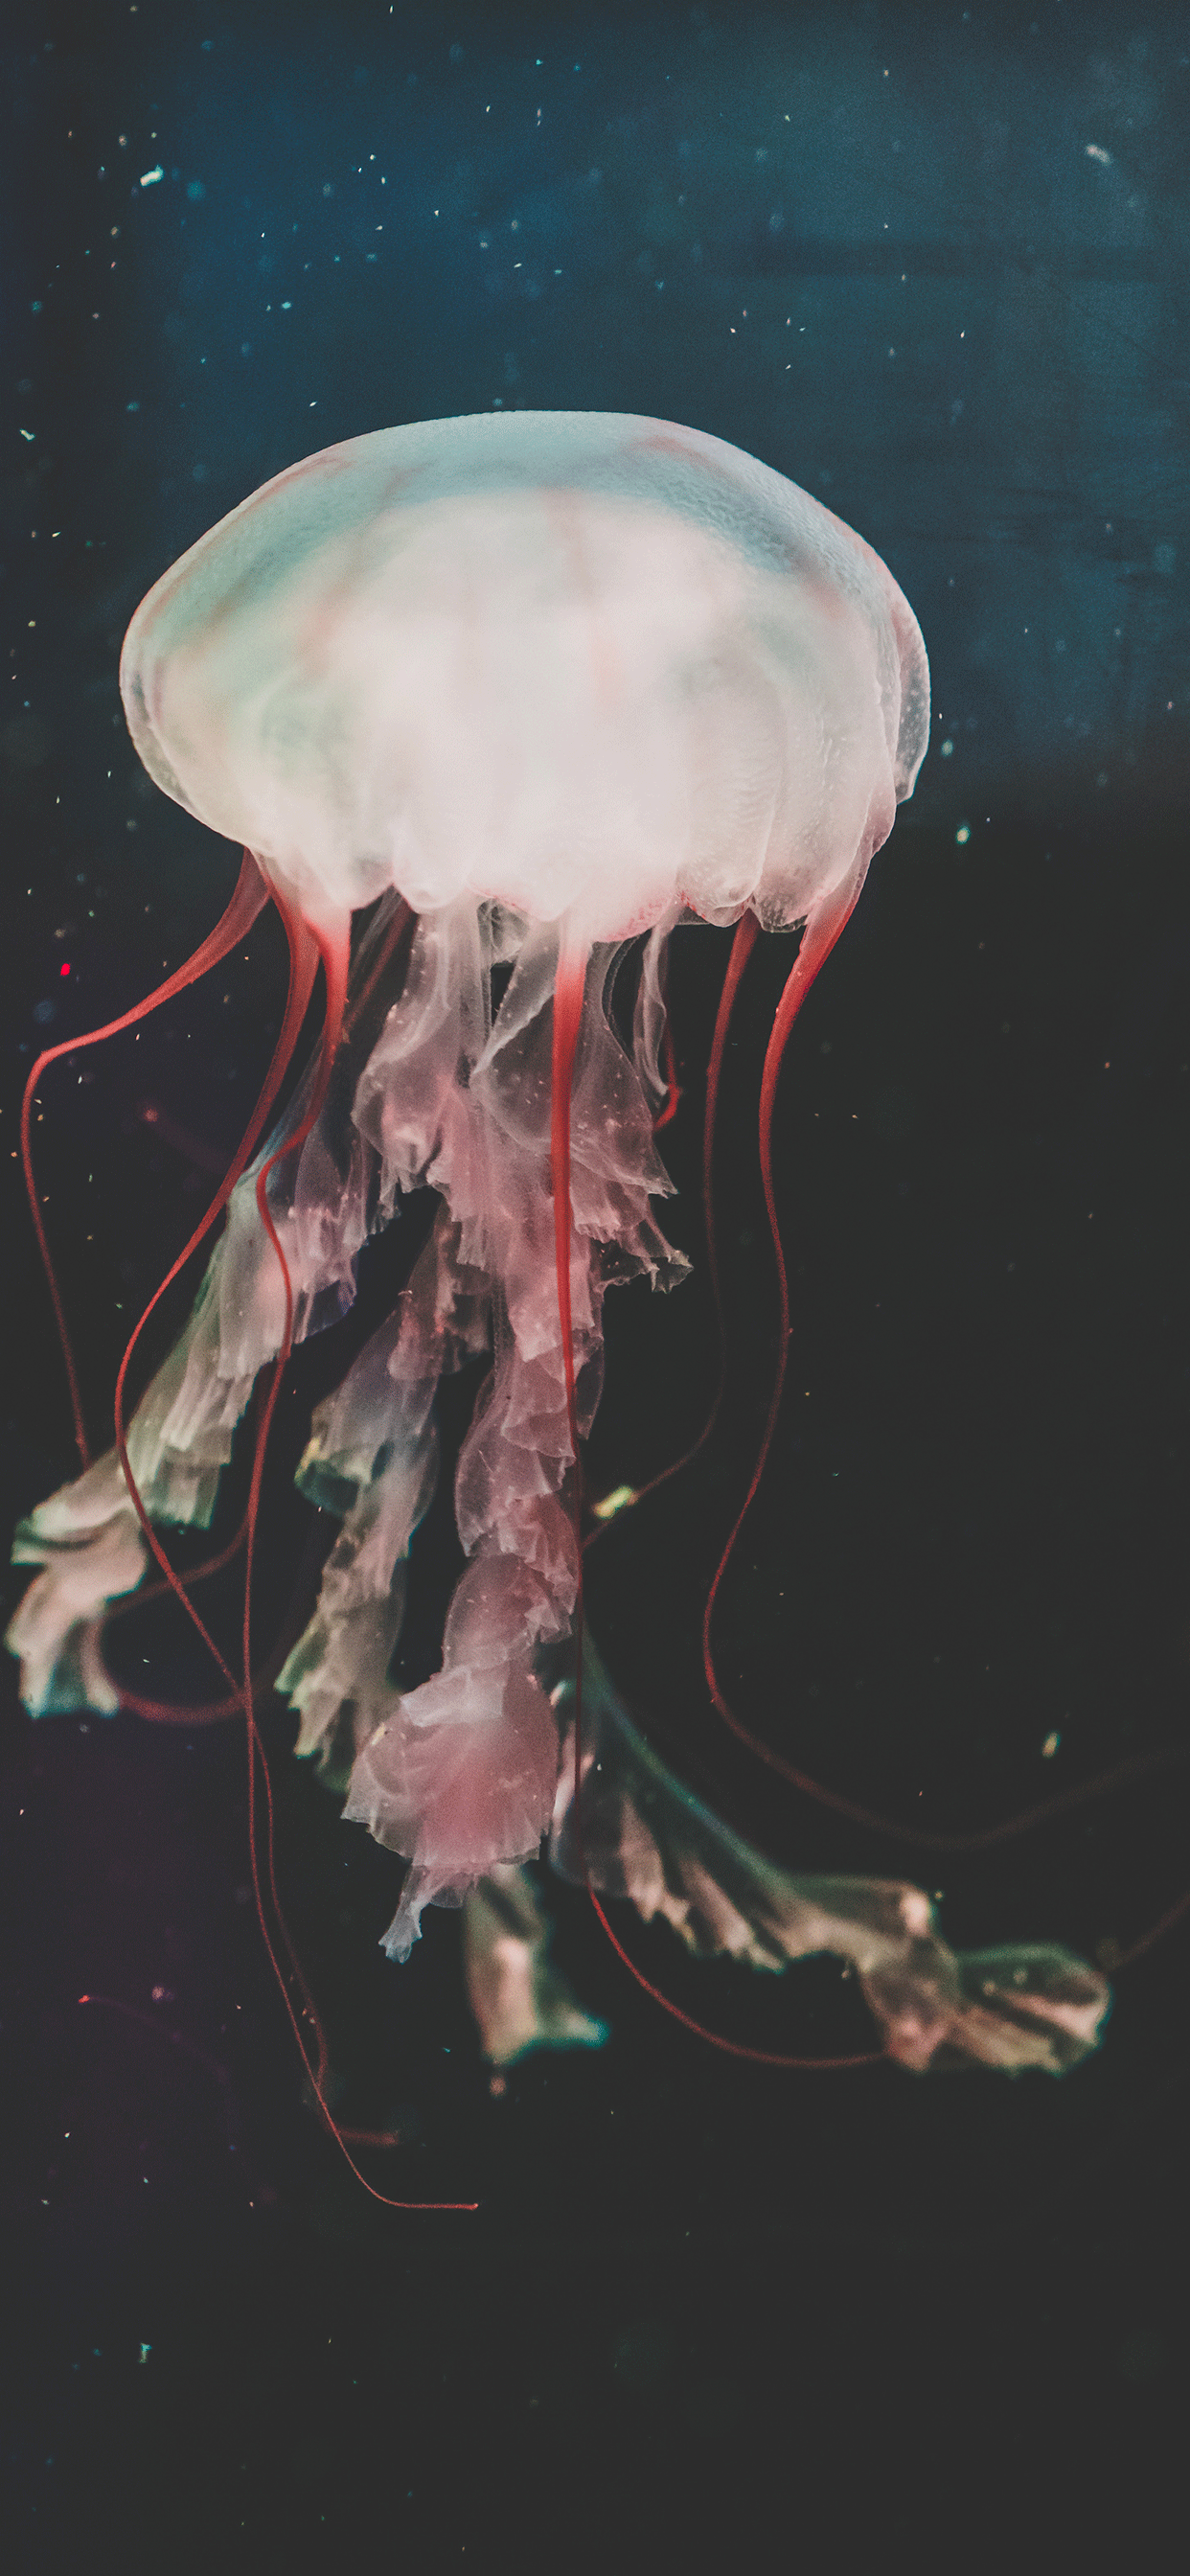 iPhone wallpapers jellyfish aquarium shedd Fonds d'écran iPhone du 26/03/2019